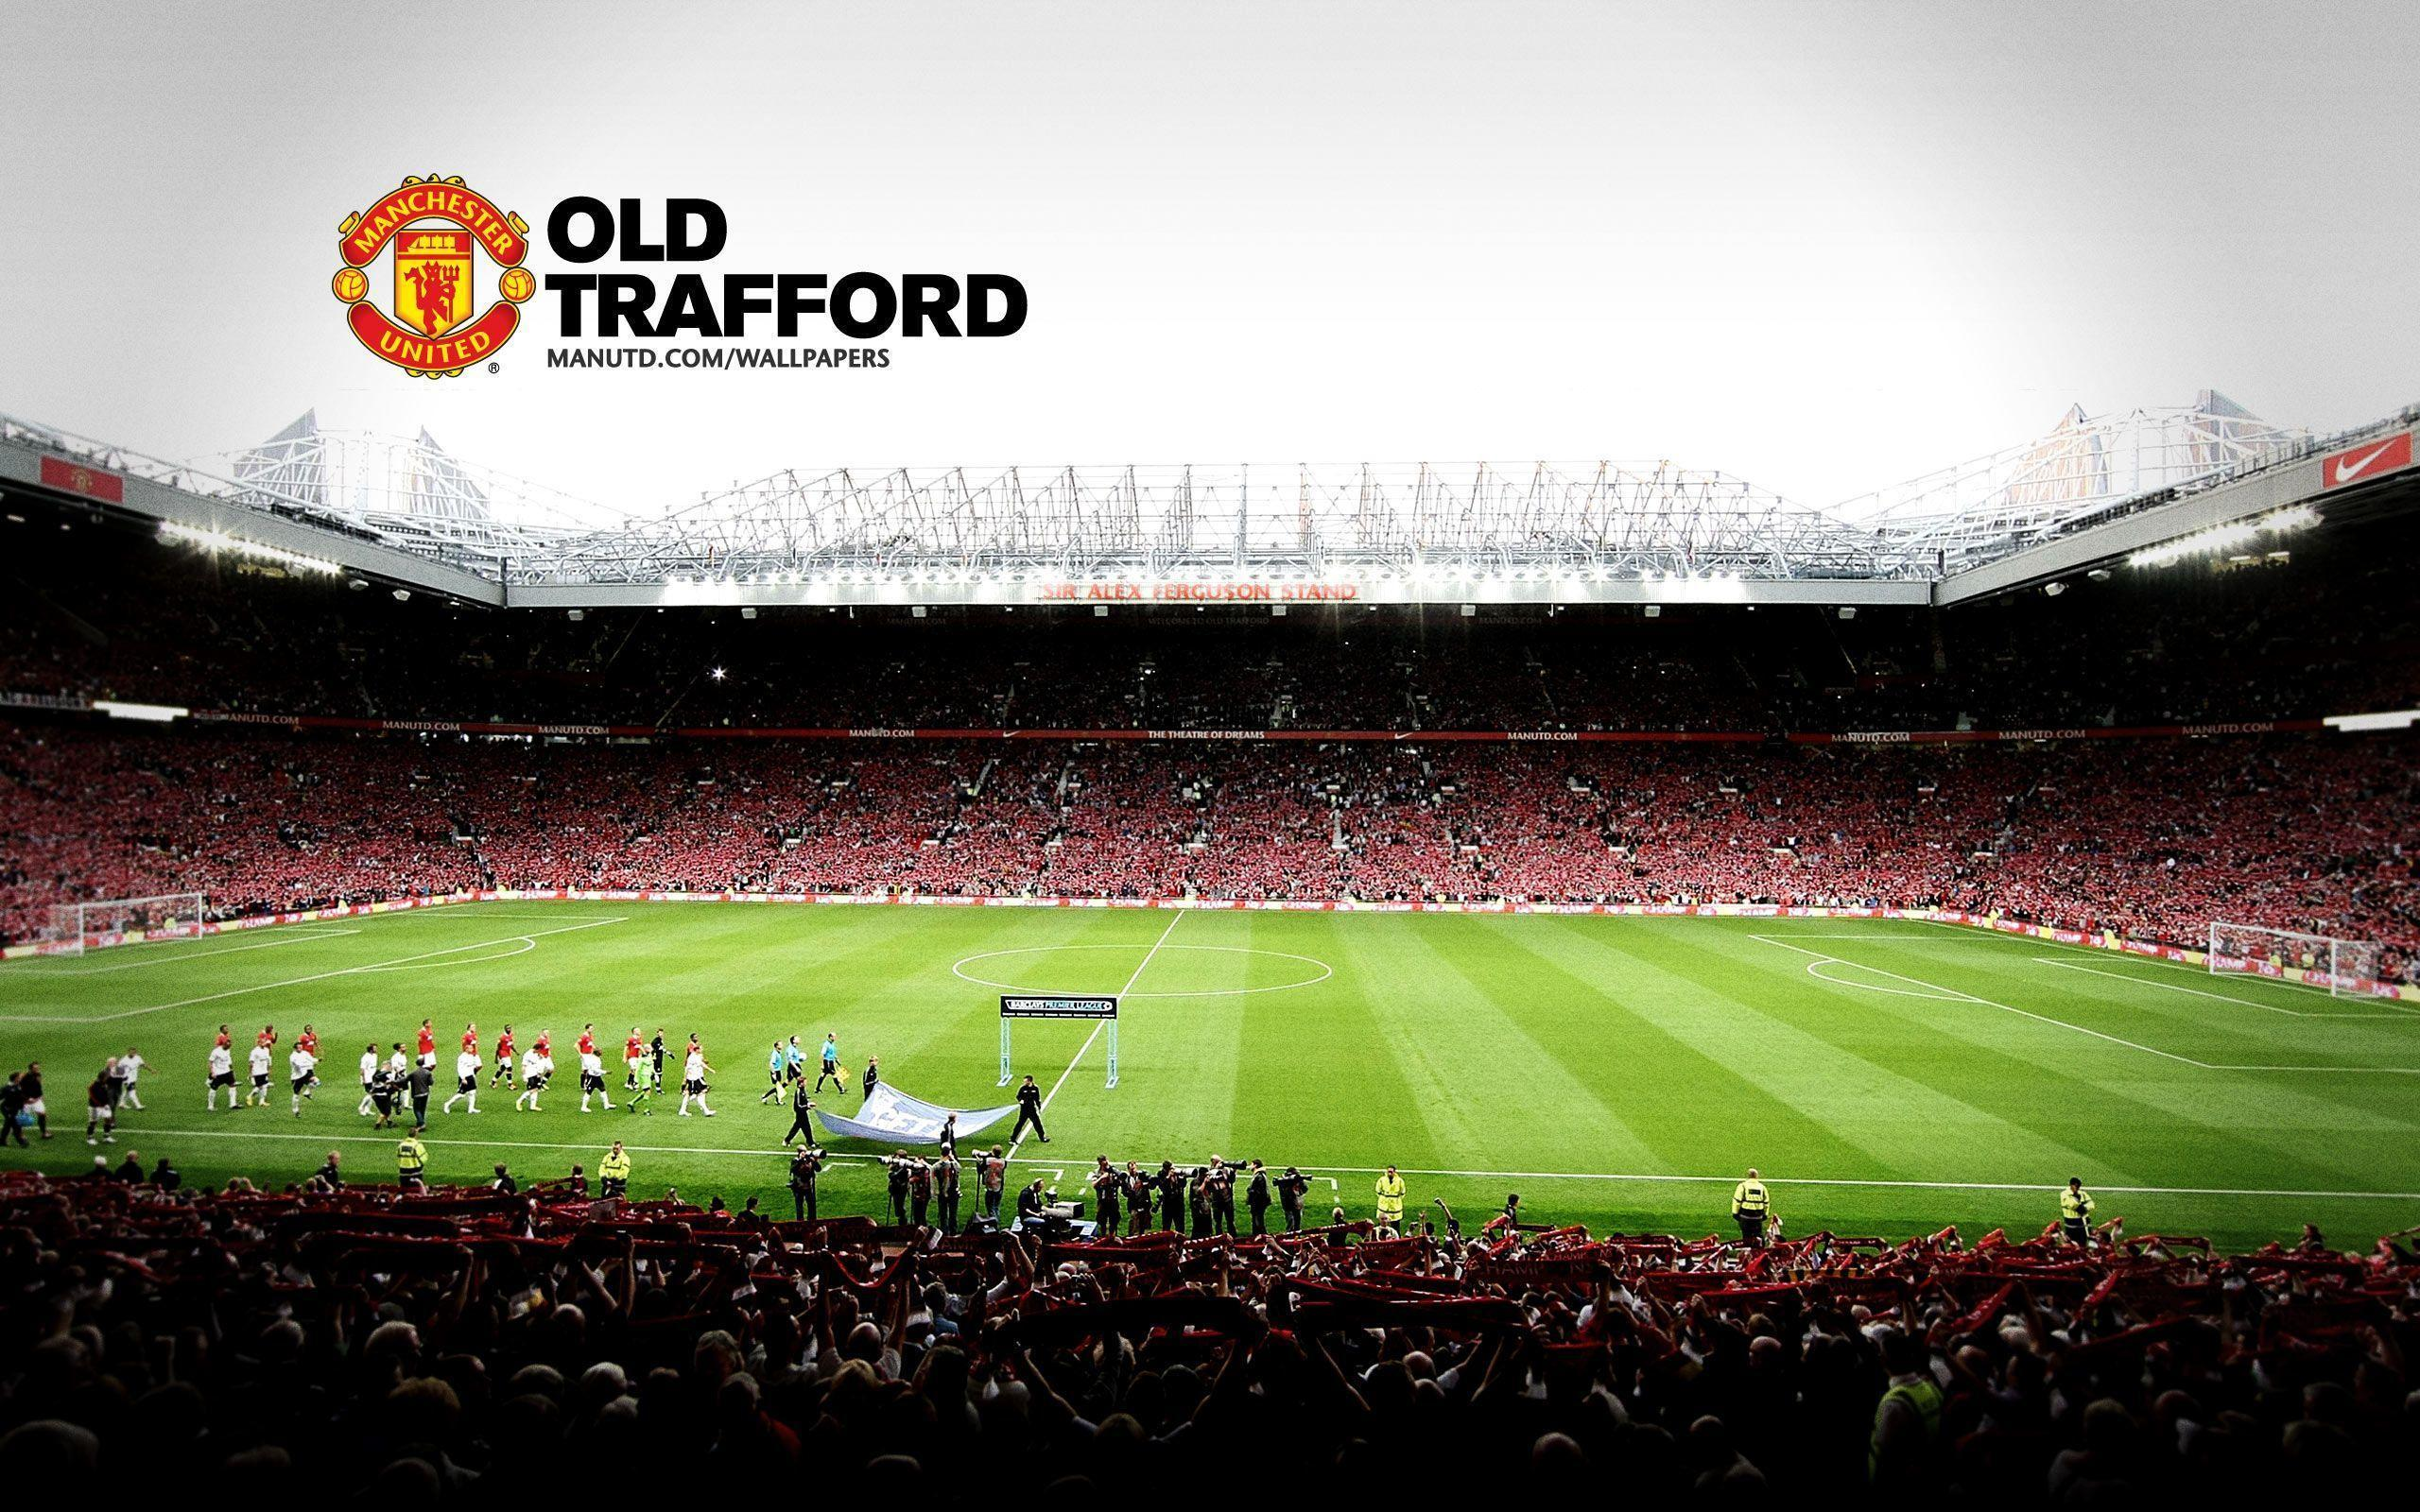 old trafford wallpapers wallpaper cave old trafford wallpapers wallpaper cave